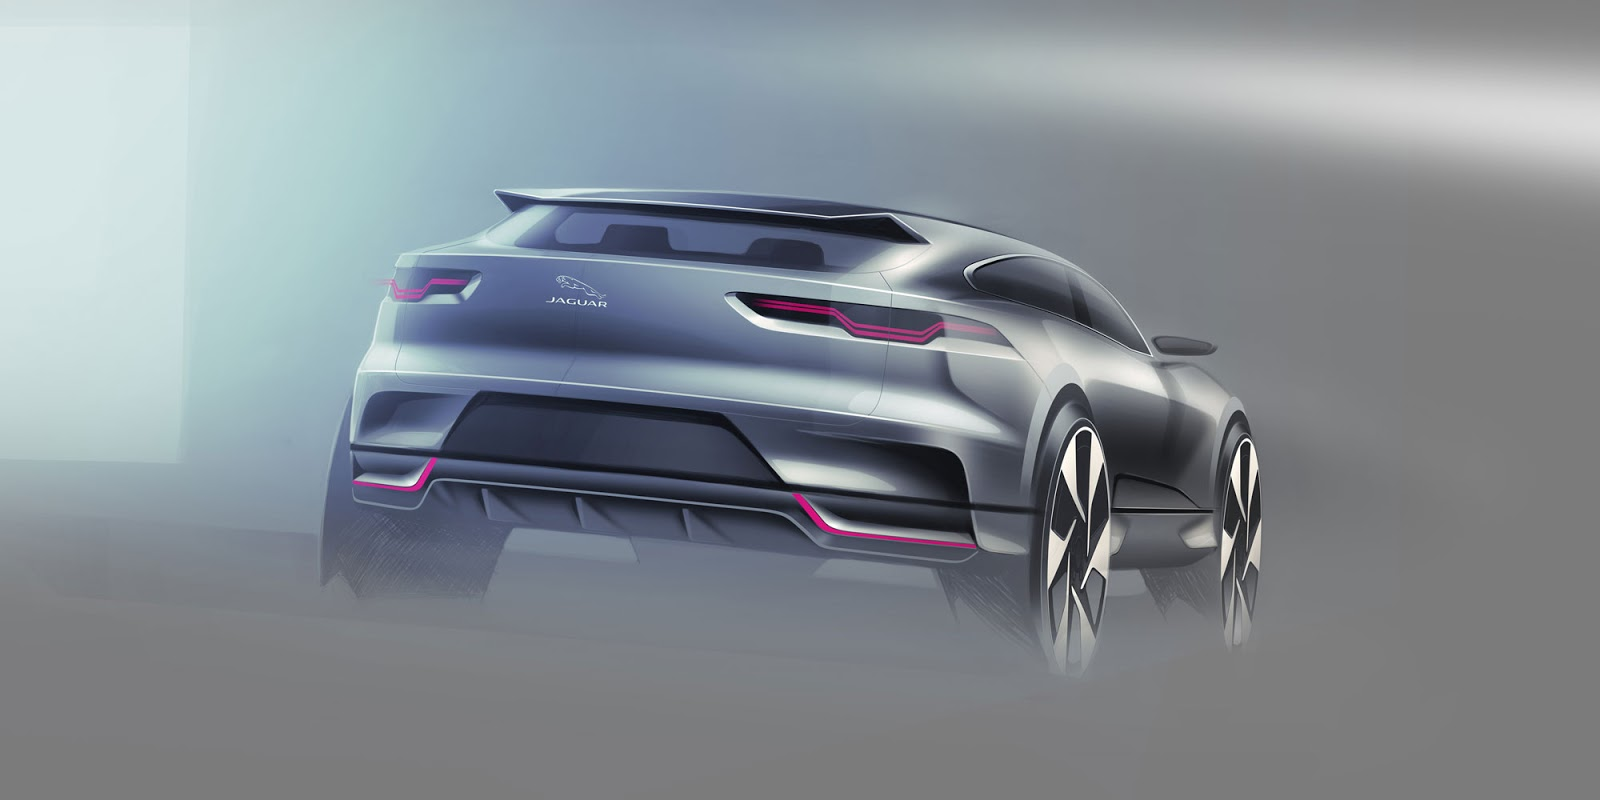 Jaguar I-Pace sketch - rear view